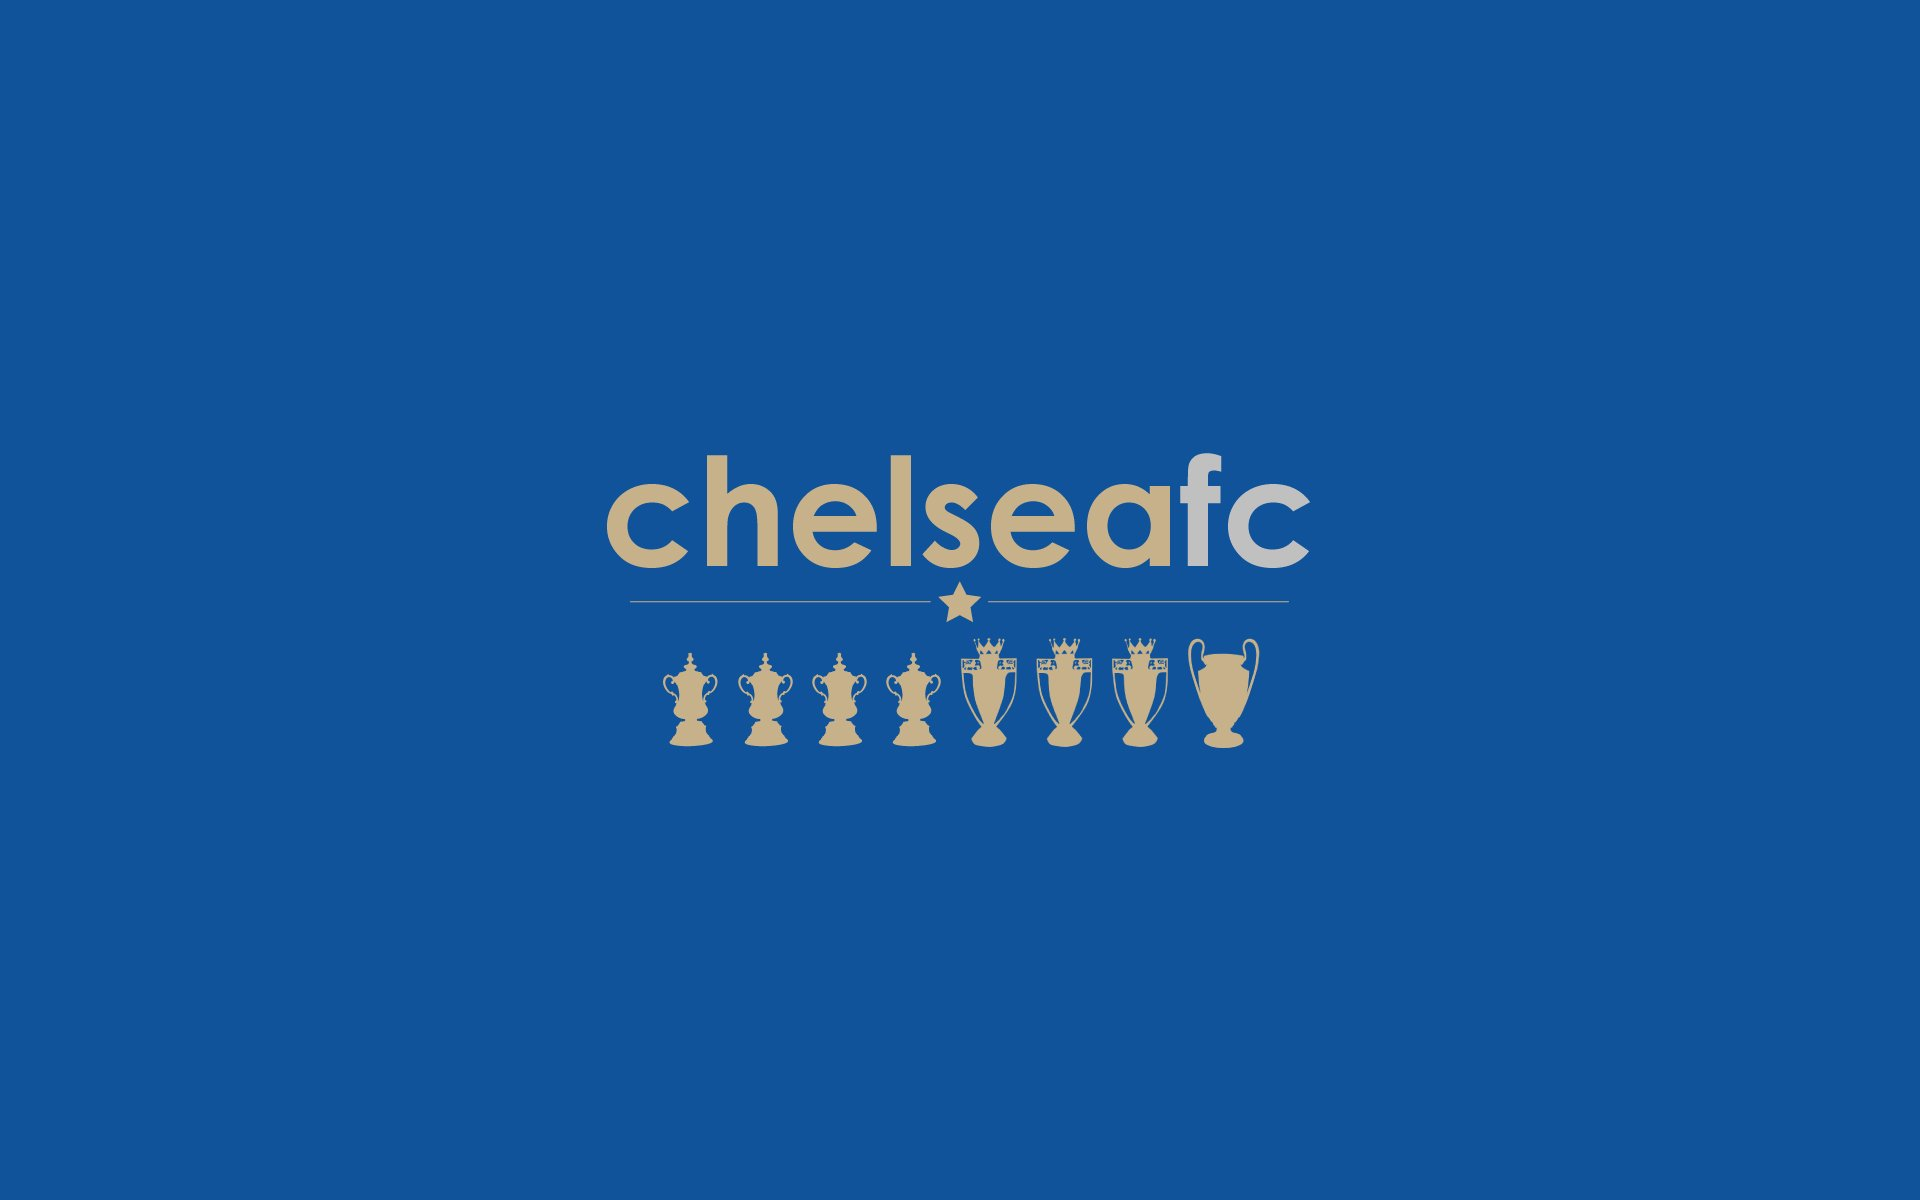 Chelsea FC Wallpaper and Theme   WallpaperAsk 1920x1200